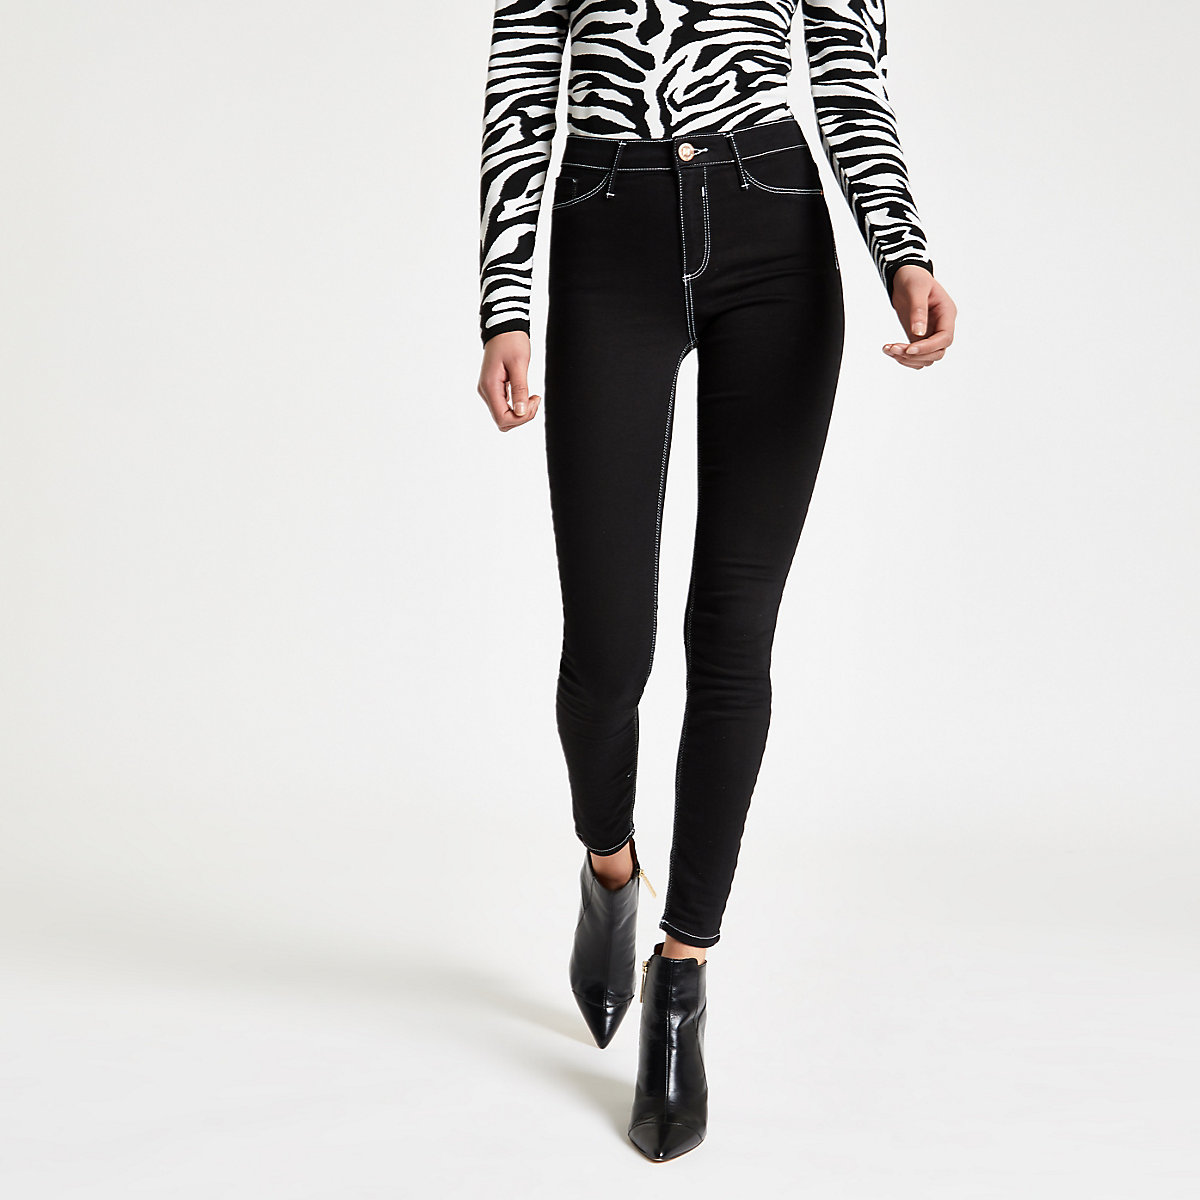 Black Molly contrast mid rise jeggings